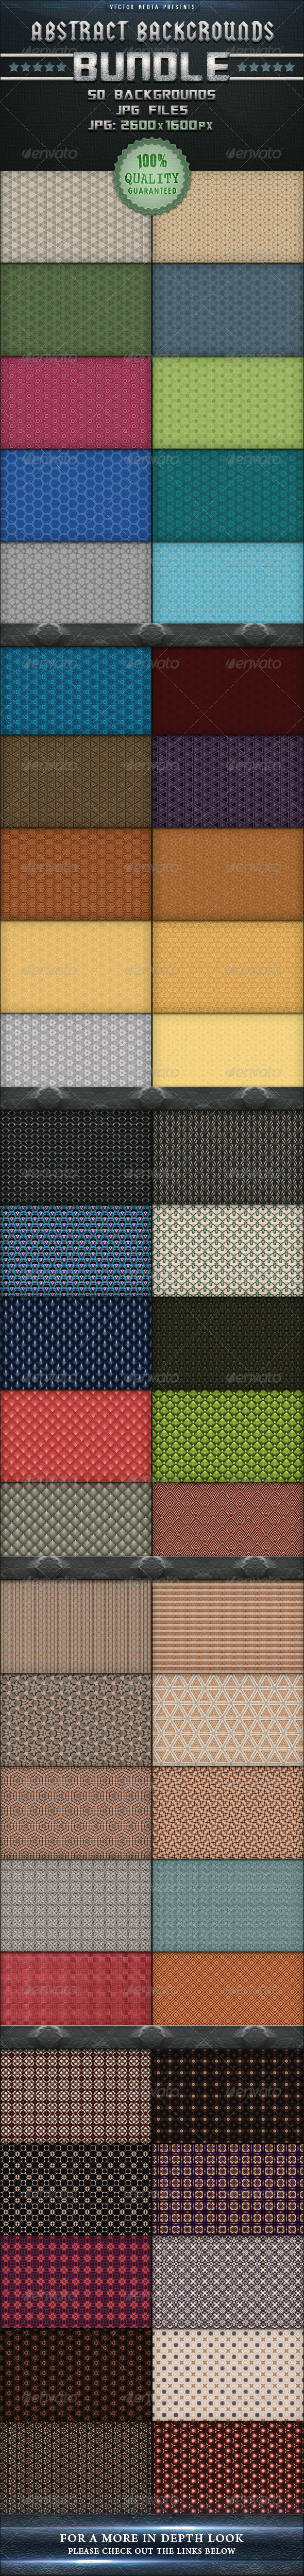 GraphicRiver Abstract Backgrounds Bundle 3353740